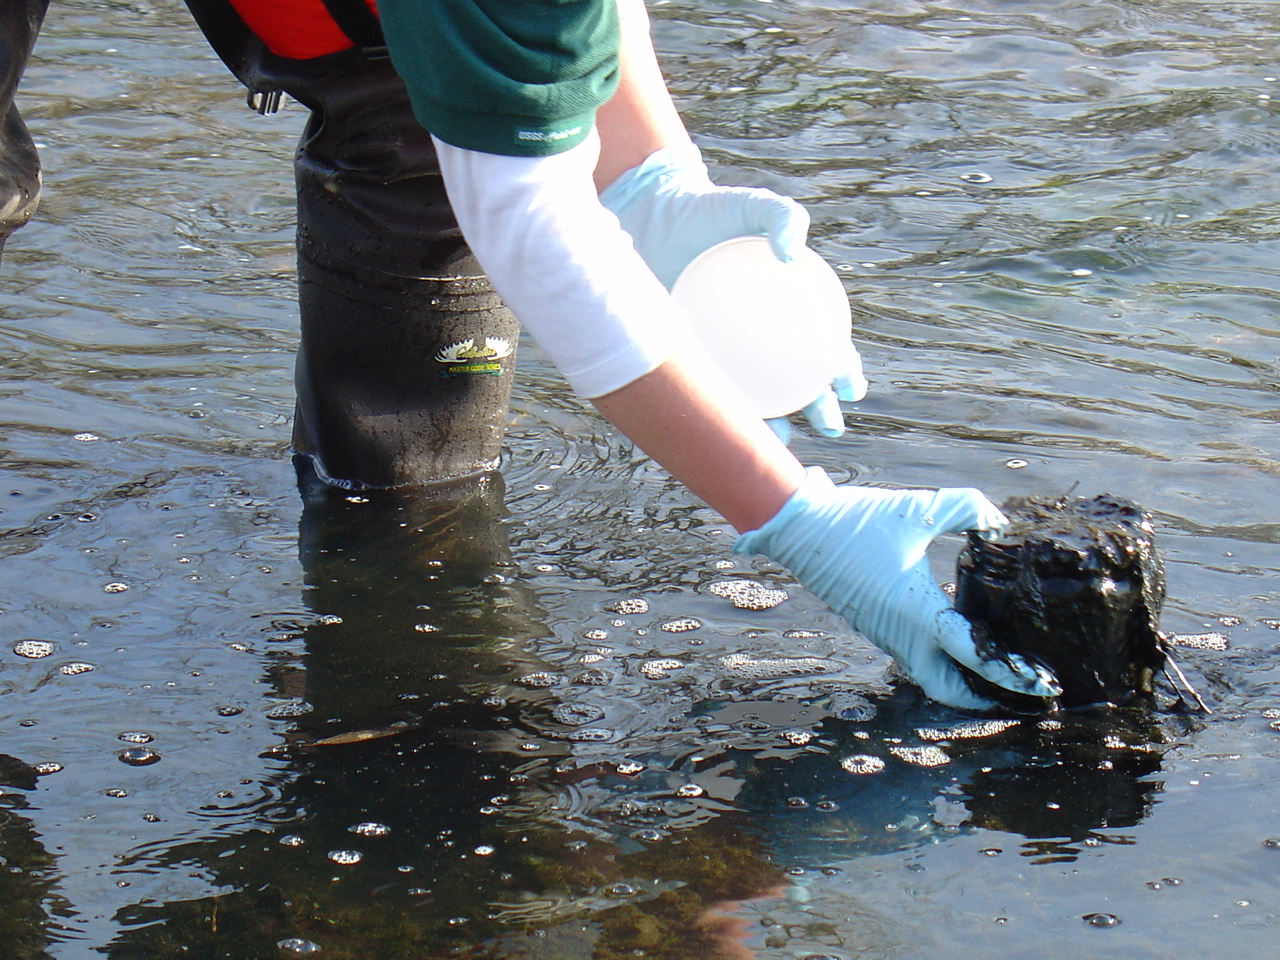 A gloved hand collects a water sample.